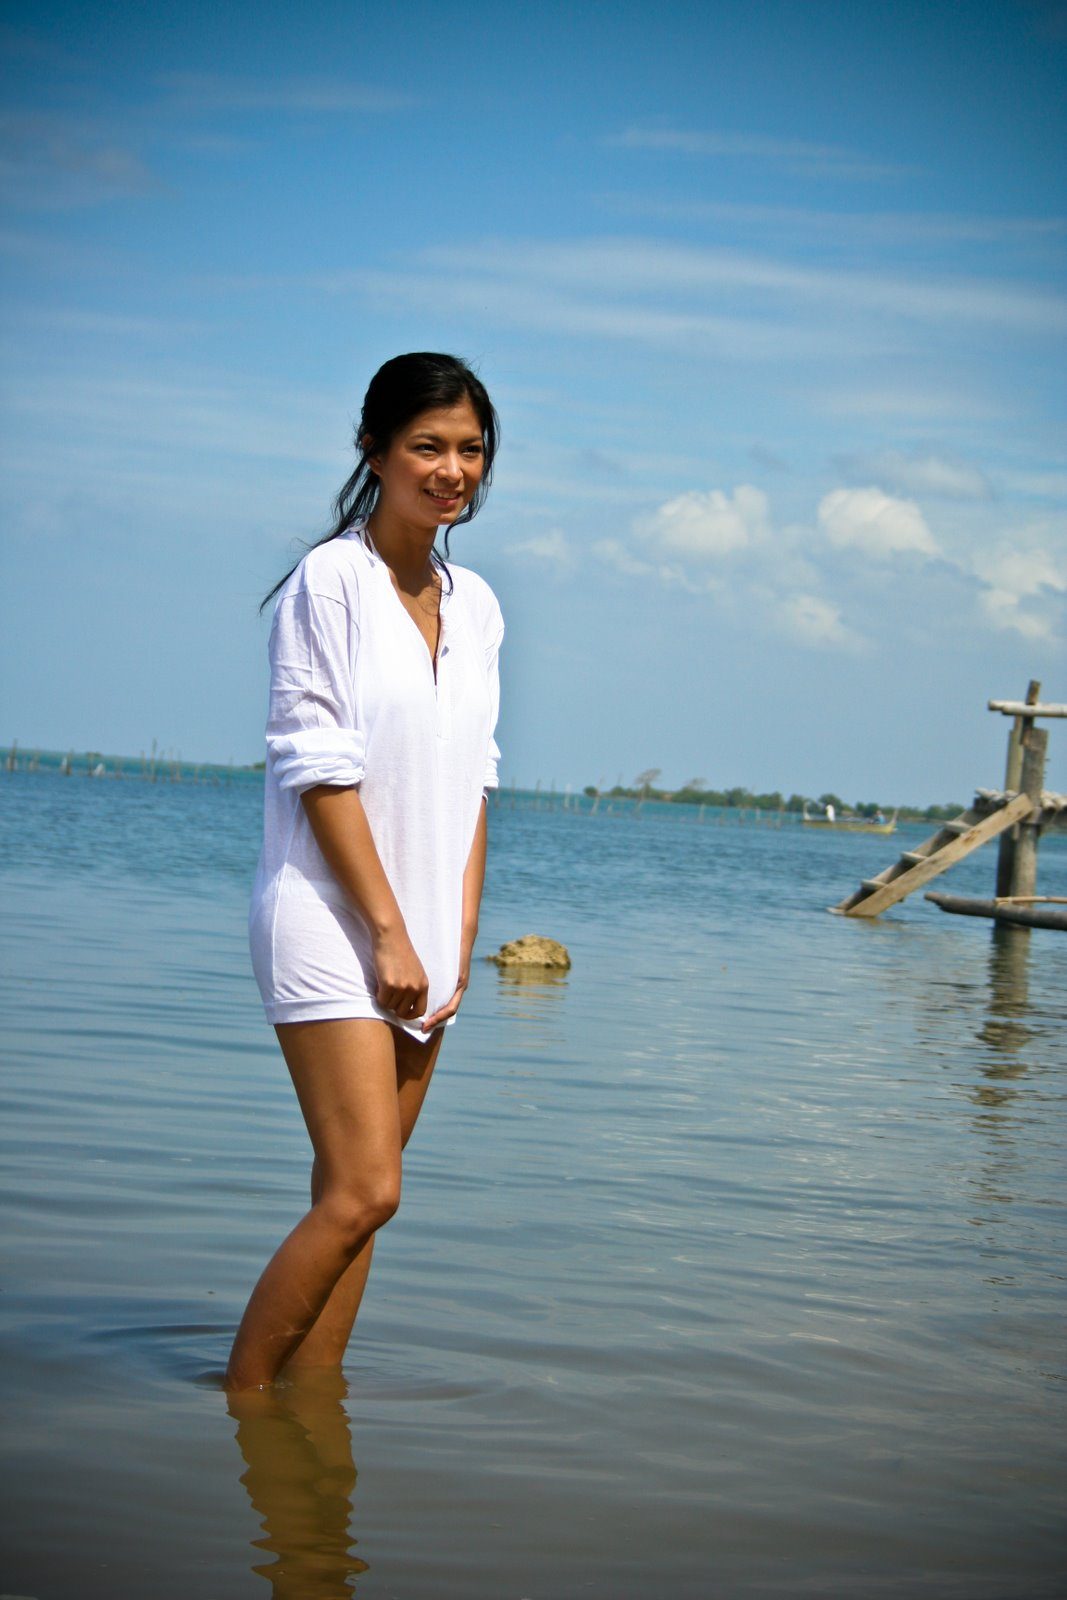 www_angel locsin scandals_com http://allpinays.blogspot.com/2012/02/sexy-angel-locsin-beach-photos.html